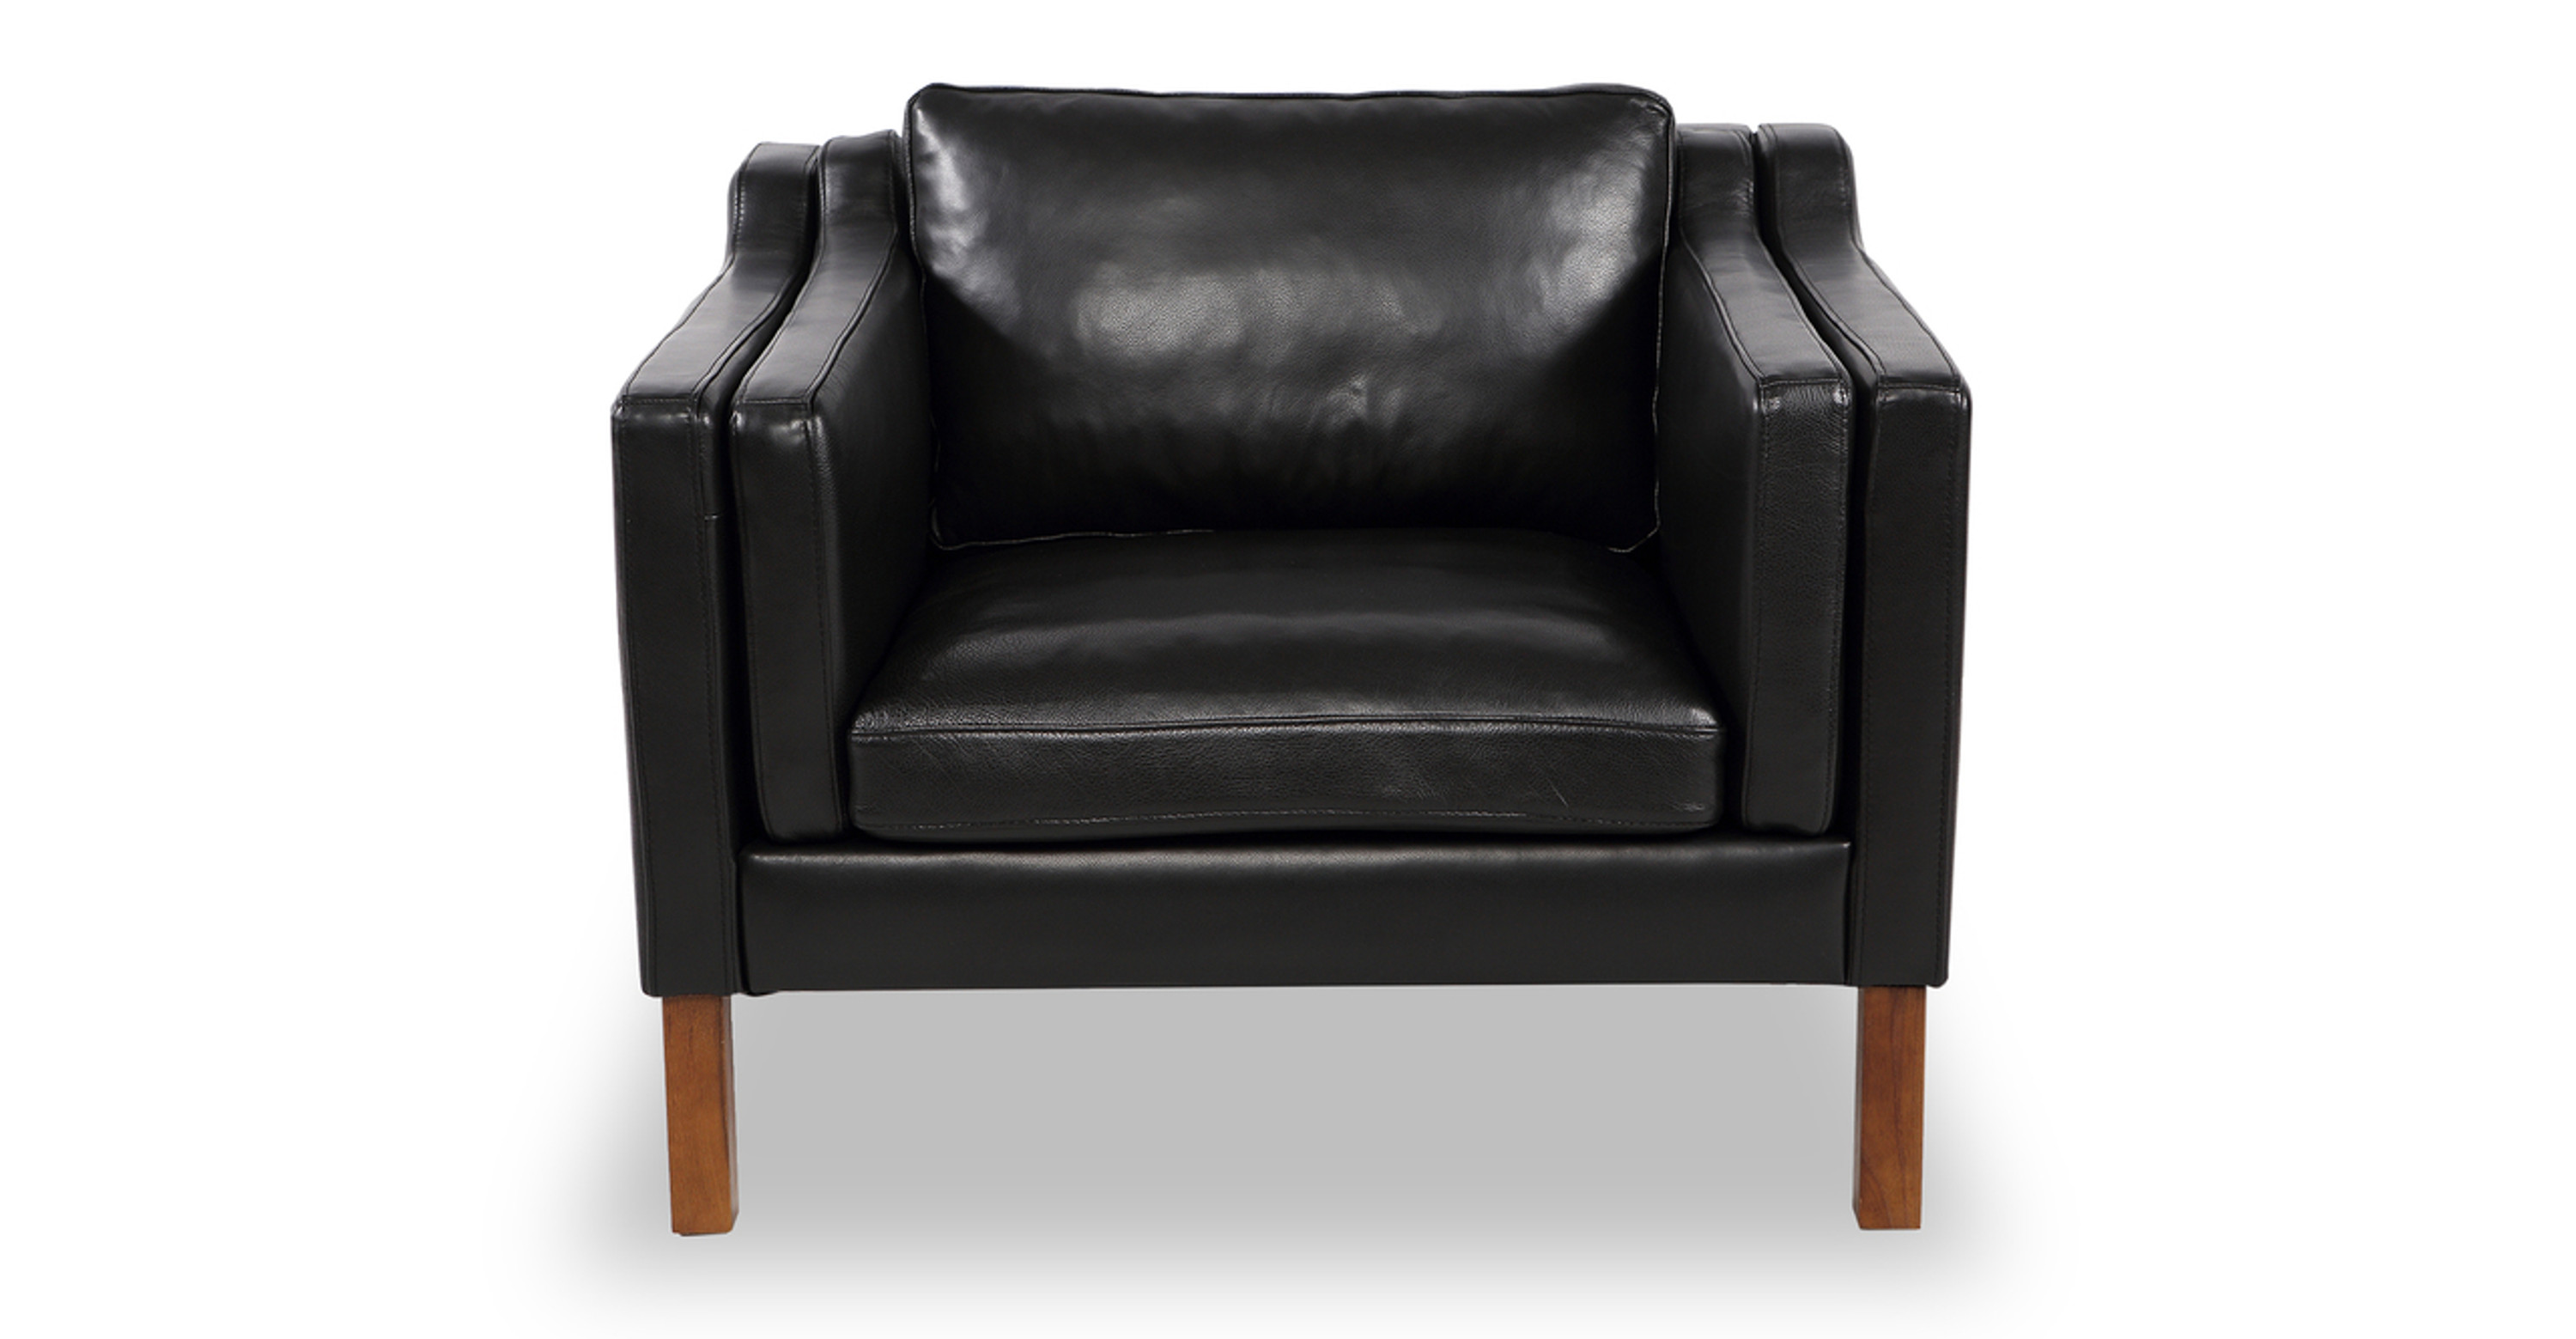 Terrific Monroe Chair Black Aniline Leather Caraccident5 Cool Chair Designs And Ideas Caraccident5Info